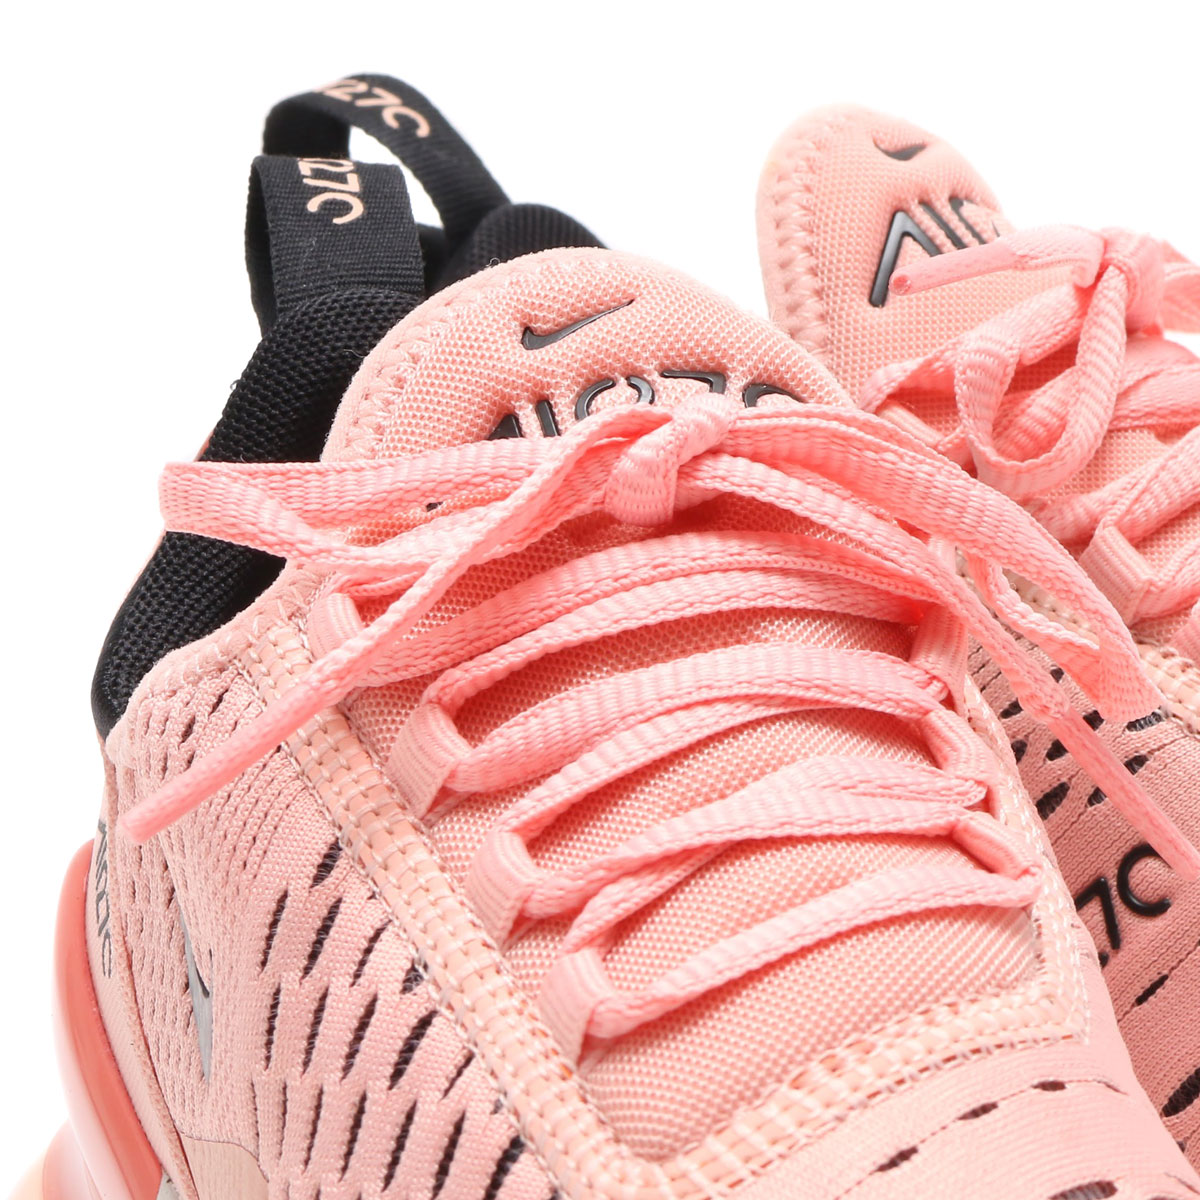 26c45650cdfd NIKE W AIR MAX 270 (Nike women Air Max 270) CORAL STARDUST BLACK-SUMMIT  WHITE 18SP-S